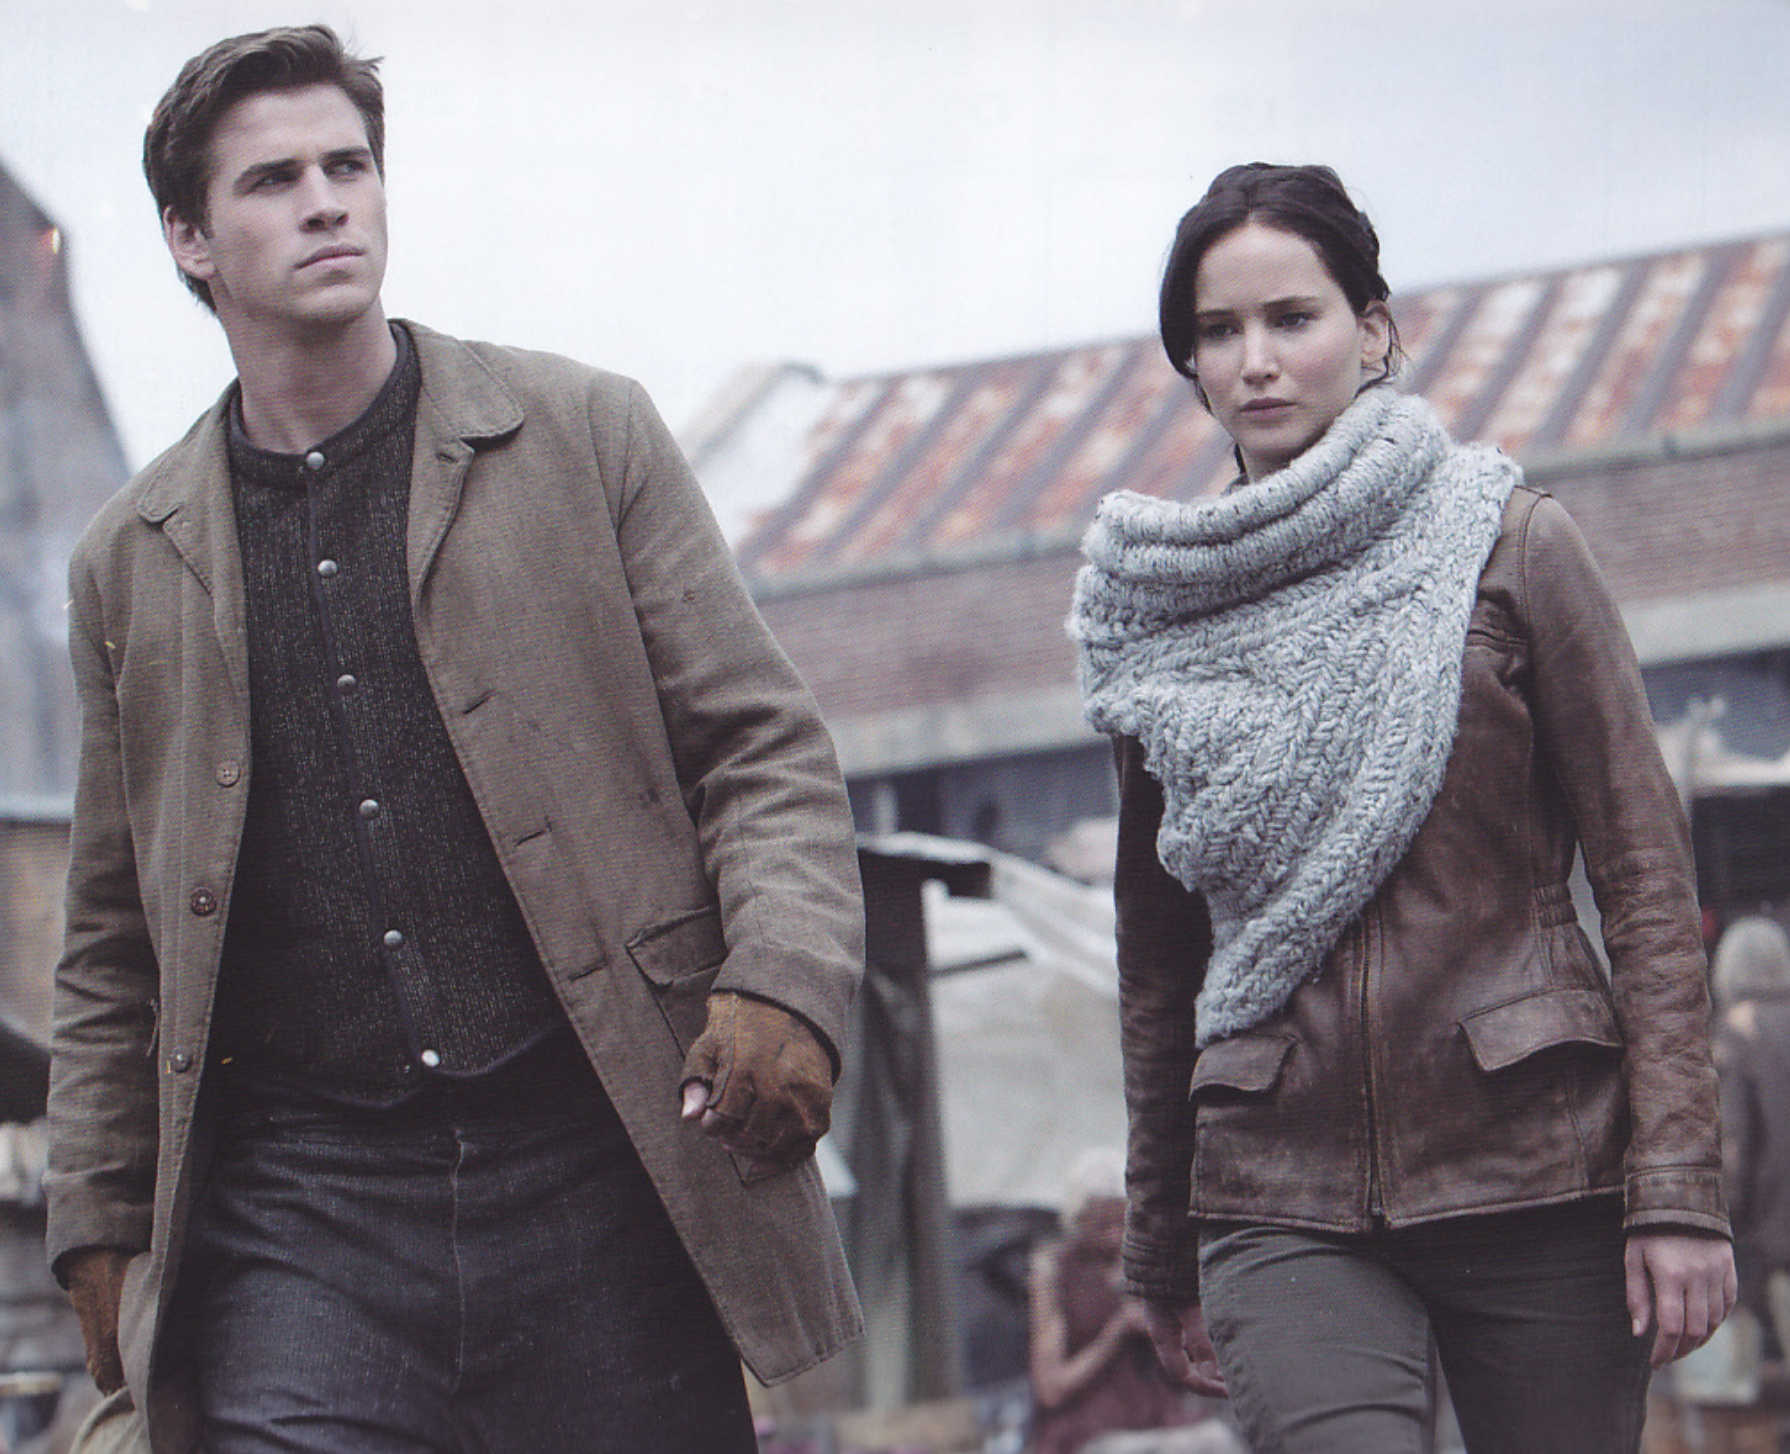 MUST HAVE: The Katniss Cowl Scarf from CATCHING FIRE